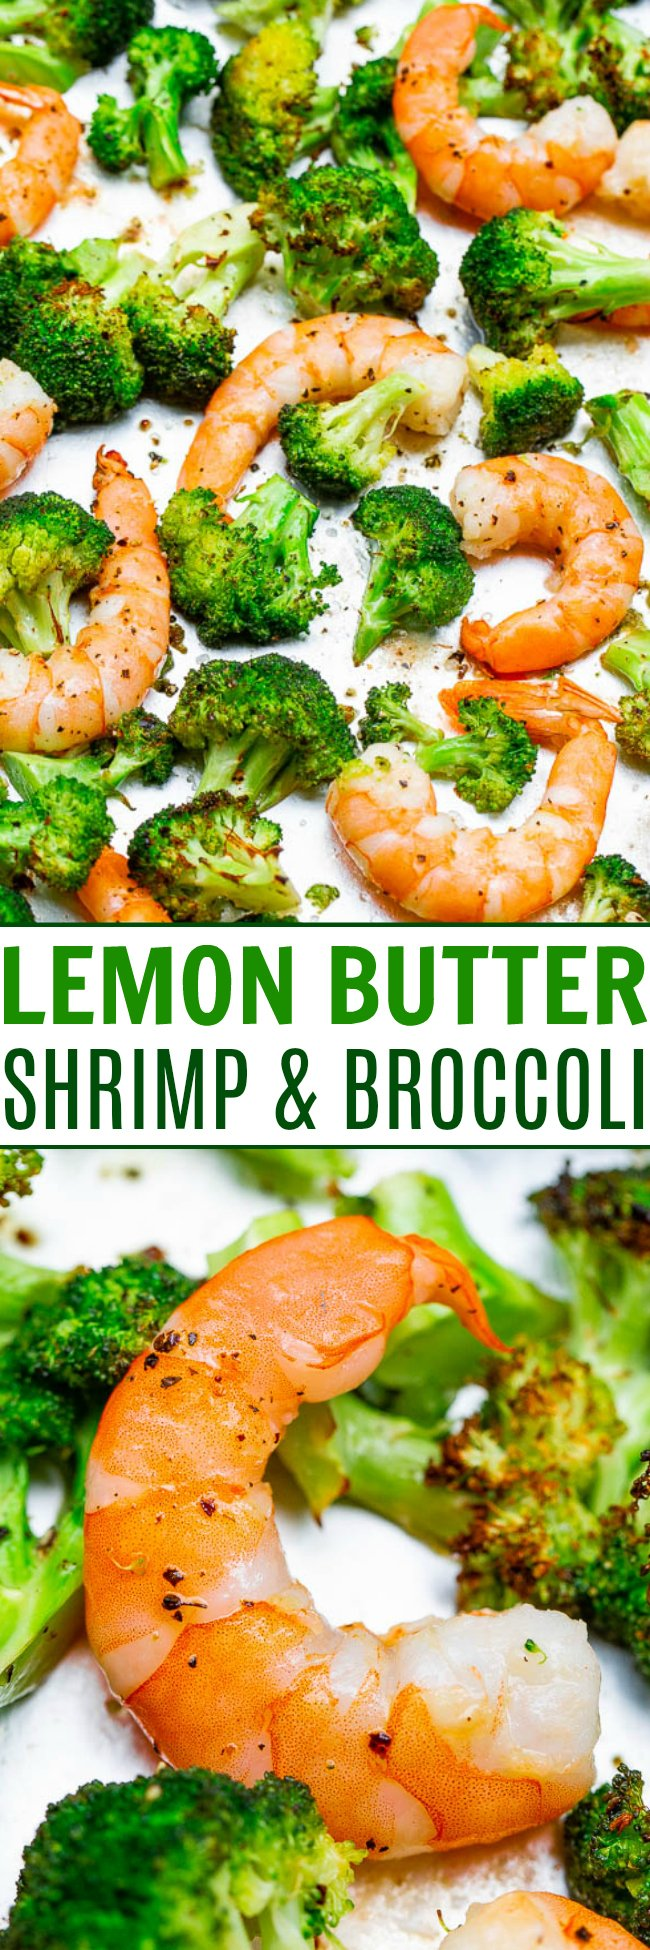 10-Minute Lemon Butter Shrimp and Broccoli - An EASY and healthy meal that's ready in no time, made on ONE sheet pan, and full of FLAVOR!! Perfect for quick lunches and busy weeknights!!